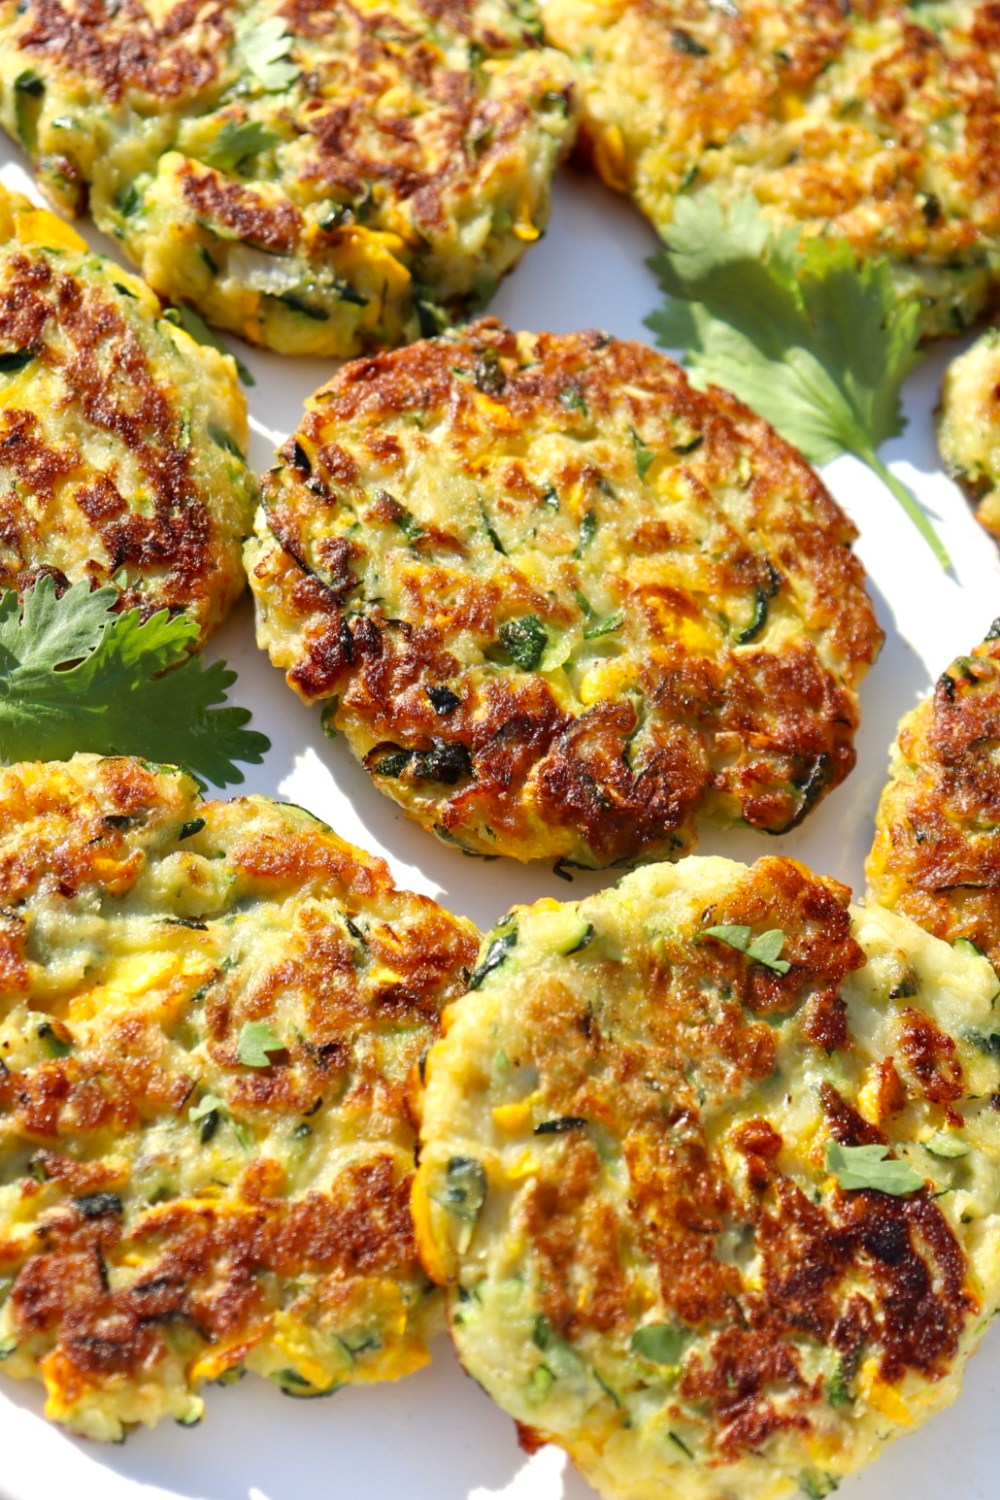 Inexpensive, easy-to-make fritters start with two base ingredients and make an endlessly customizable, protein-rich side or vegan entree.